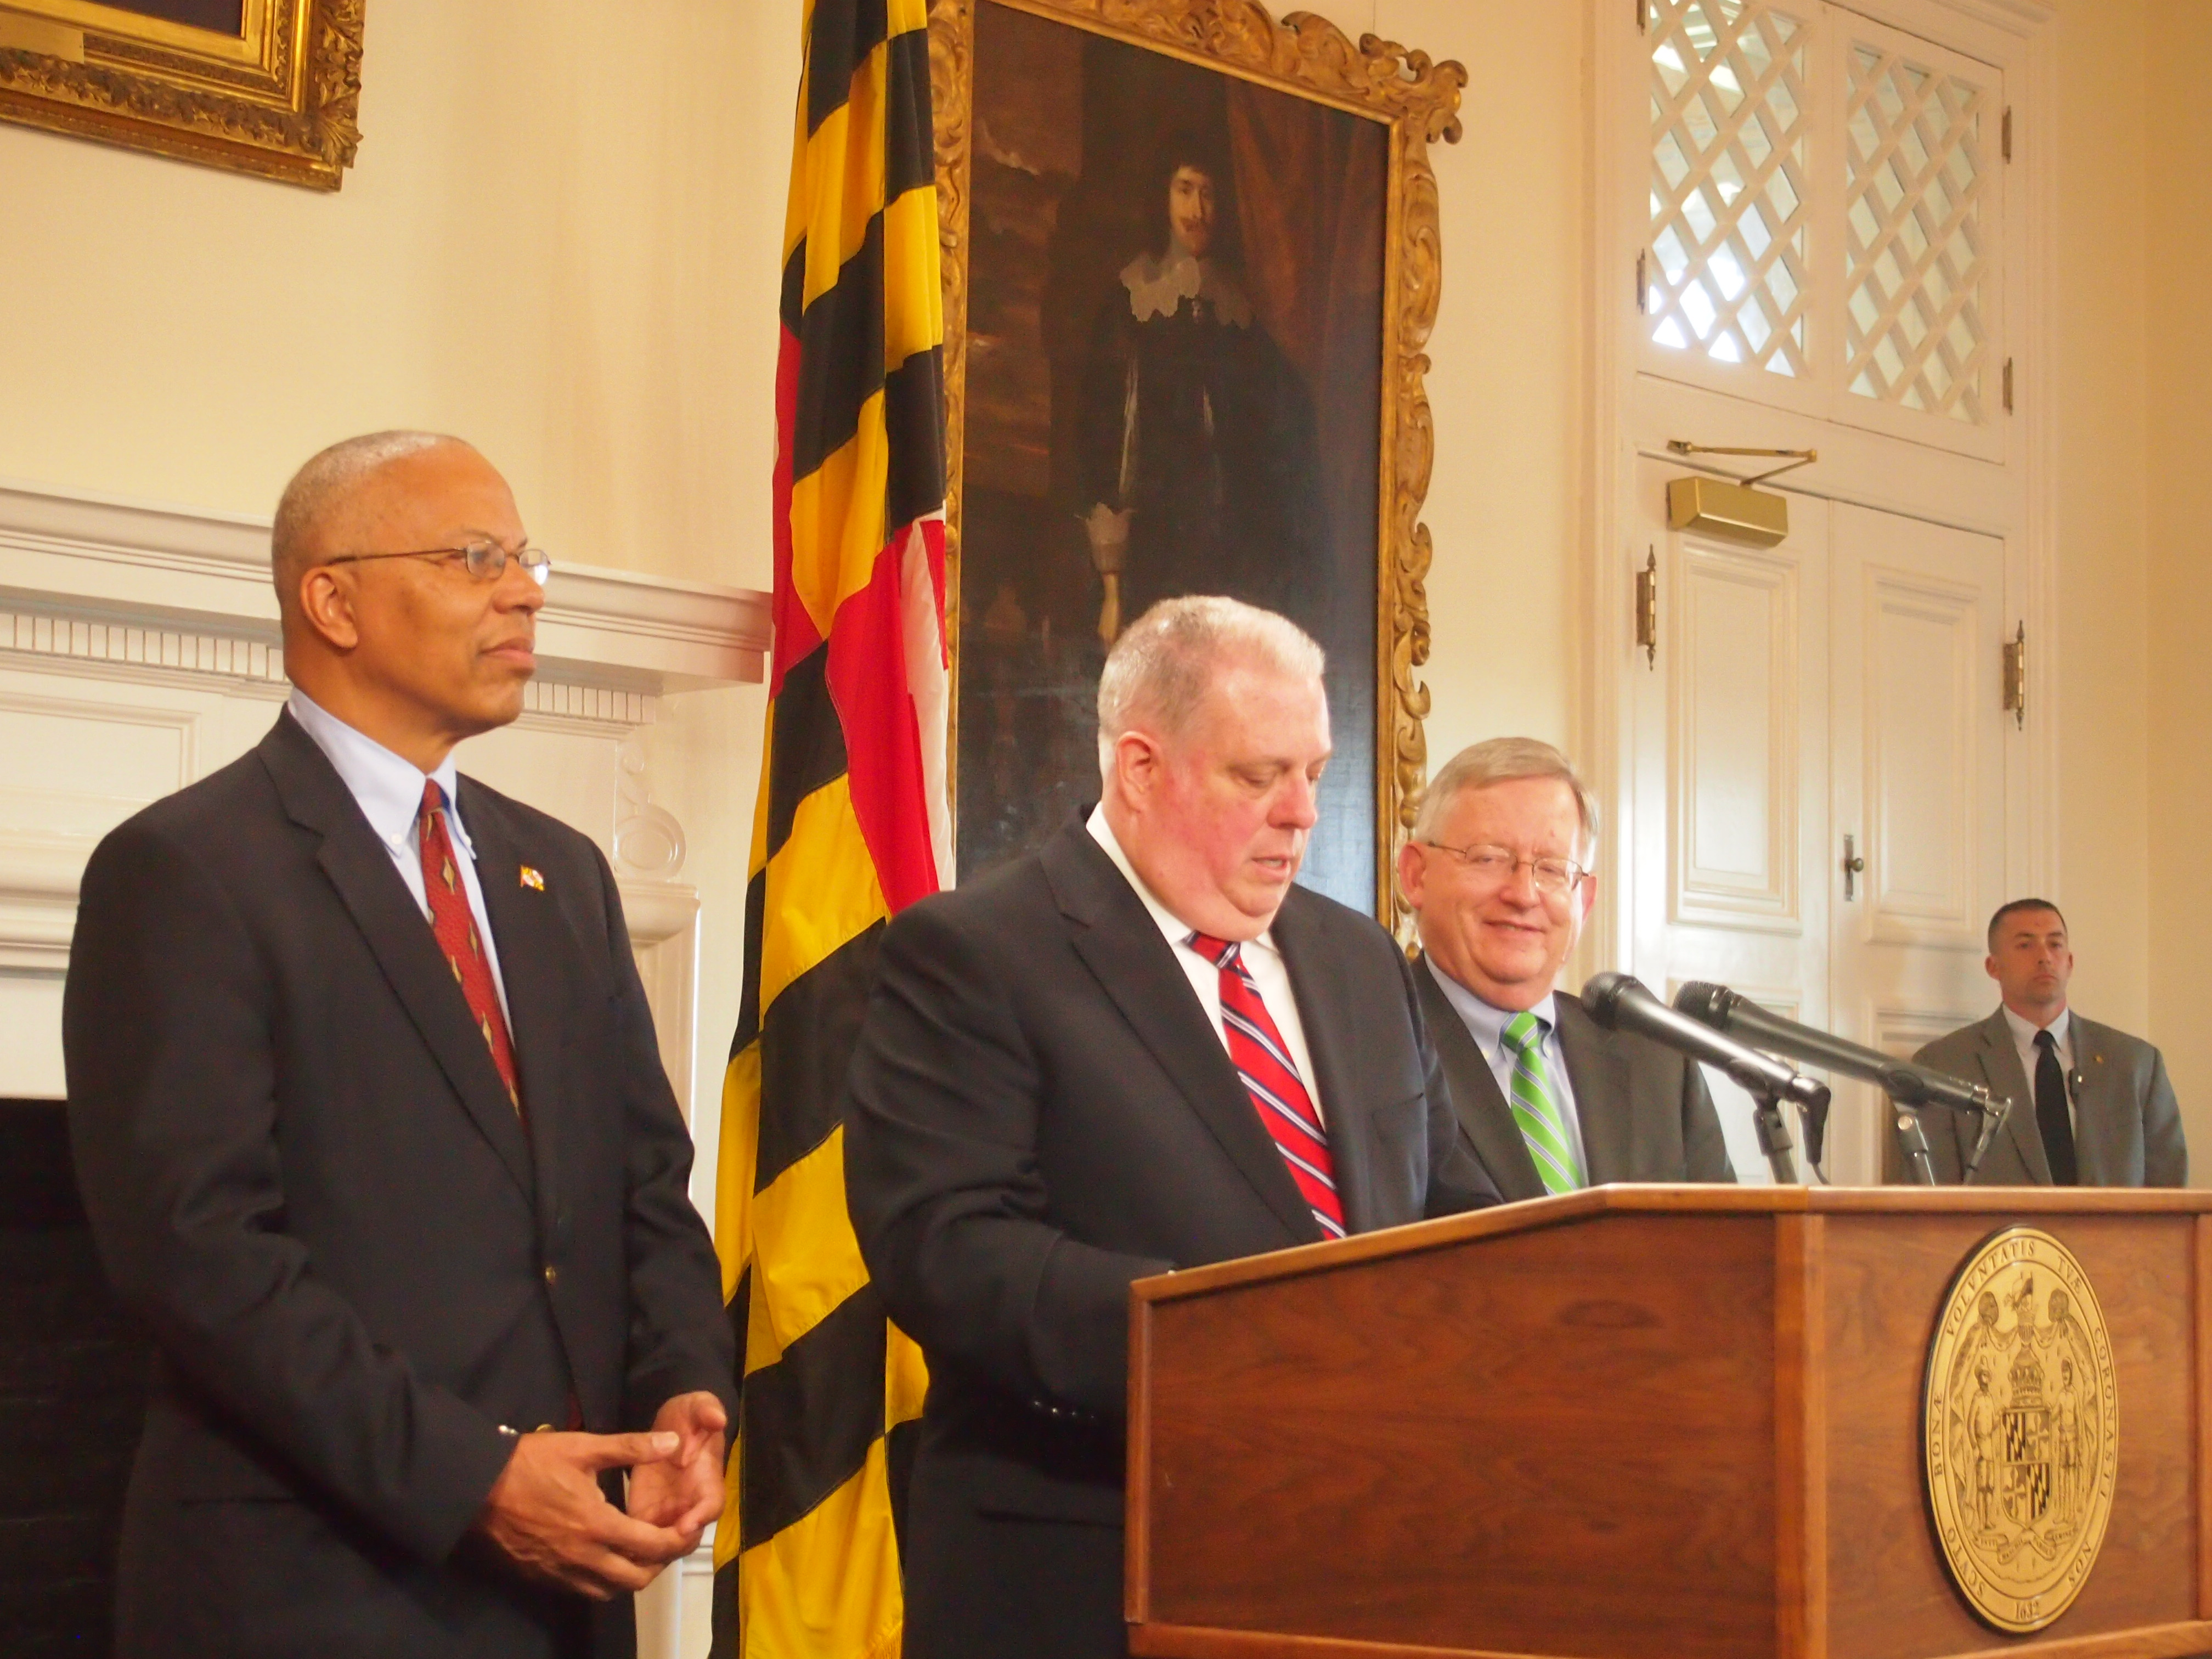 Republican Gov. Larry Hogan, with Lt. Gov. Boyd Rutherford (left) and chief legislative officer Joe Getty (right), speaks to the media about the end of the legislative session and relations with the General Assembly on Tuesday, April 5, 2016. Capital News Service photo by Lexie Schapitl